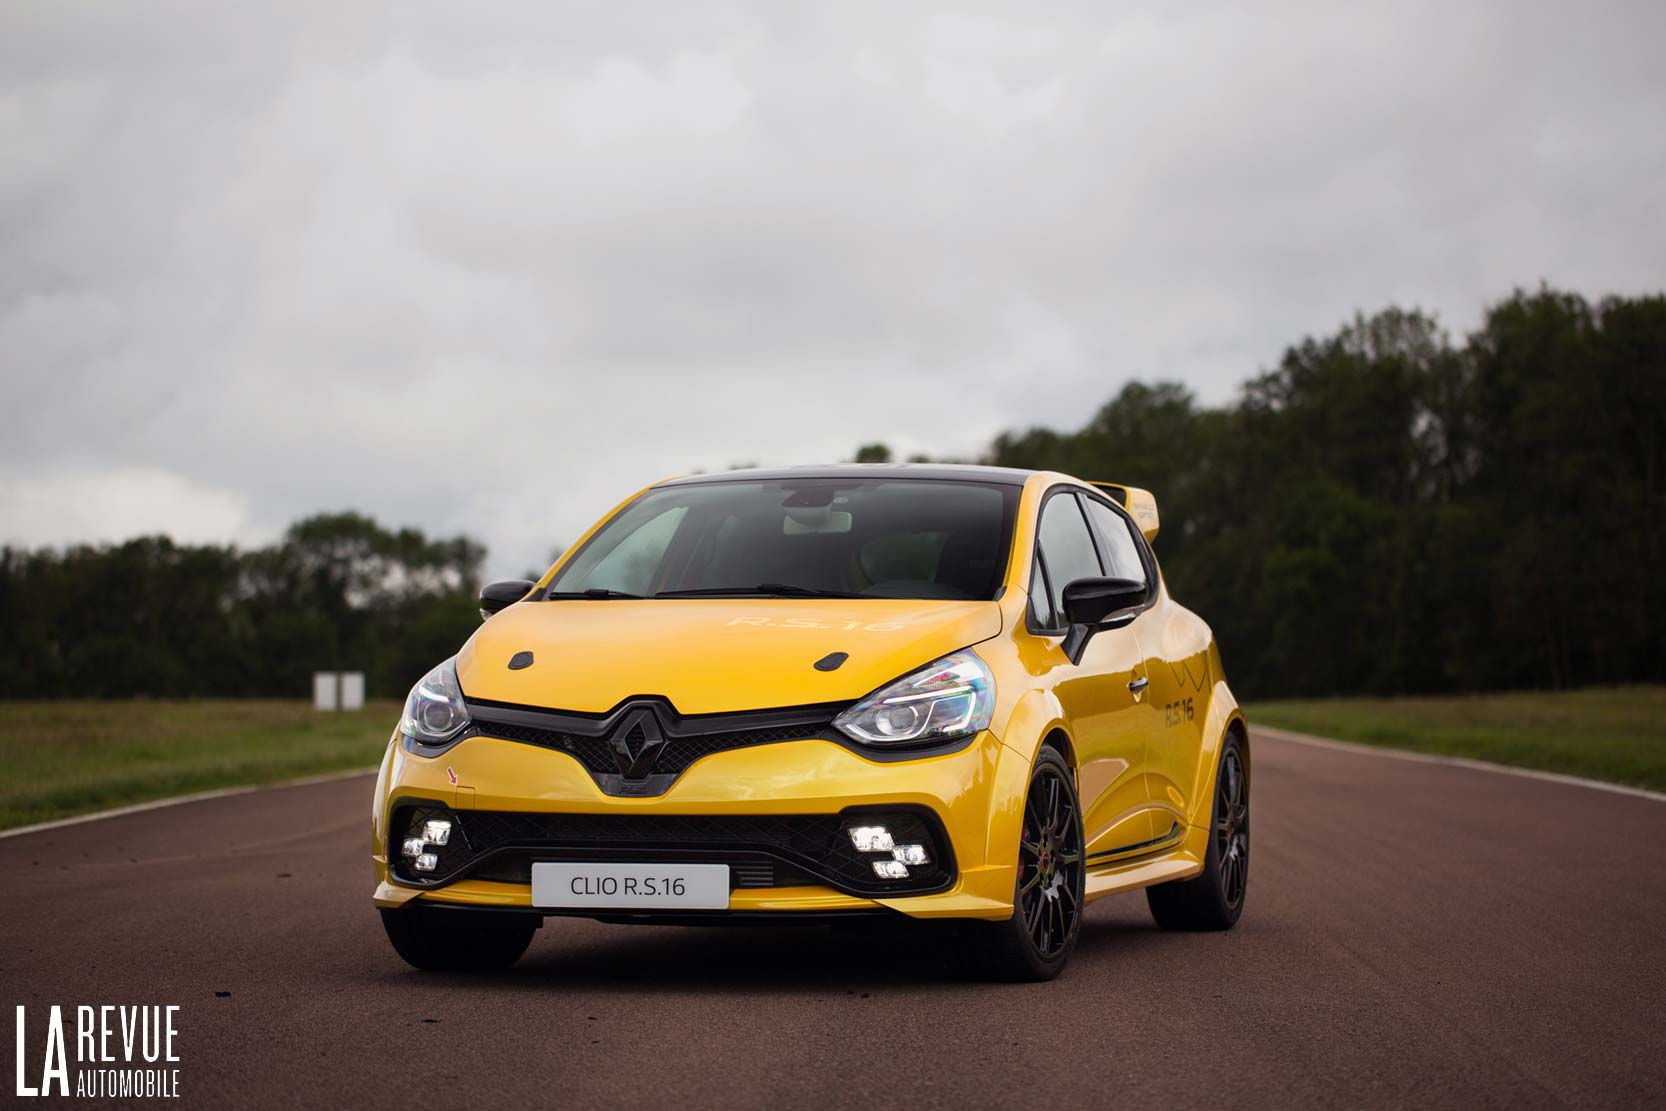 2018 renault clio rs car photos catalog 2019. Black Bedroom Furniture Sets. Home Design Ideas